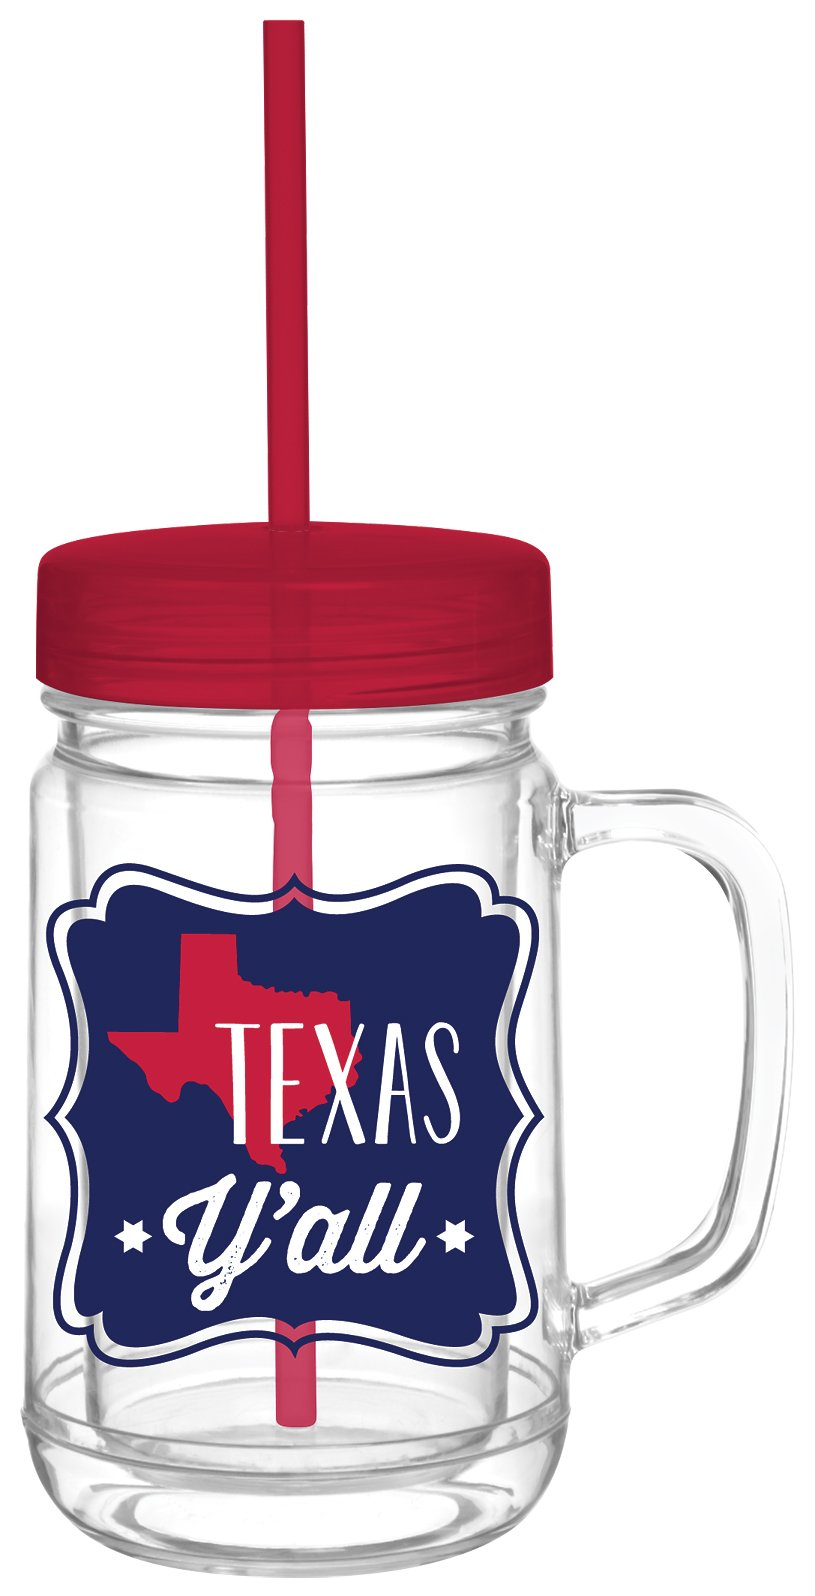 Texas Y'all Acrylic Double Wall Mason Jar with Lid and Straw